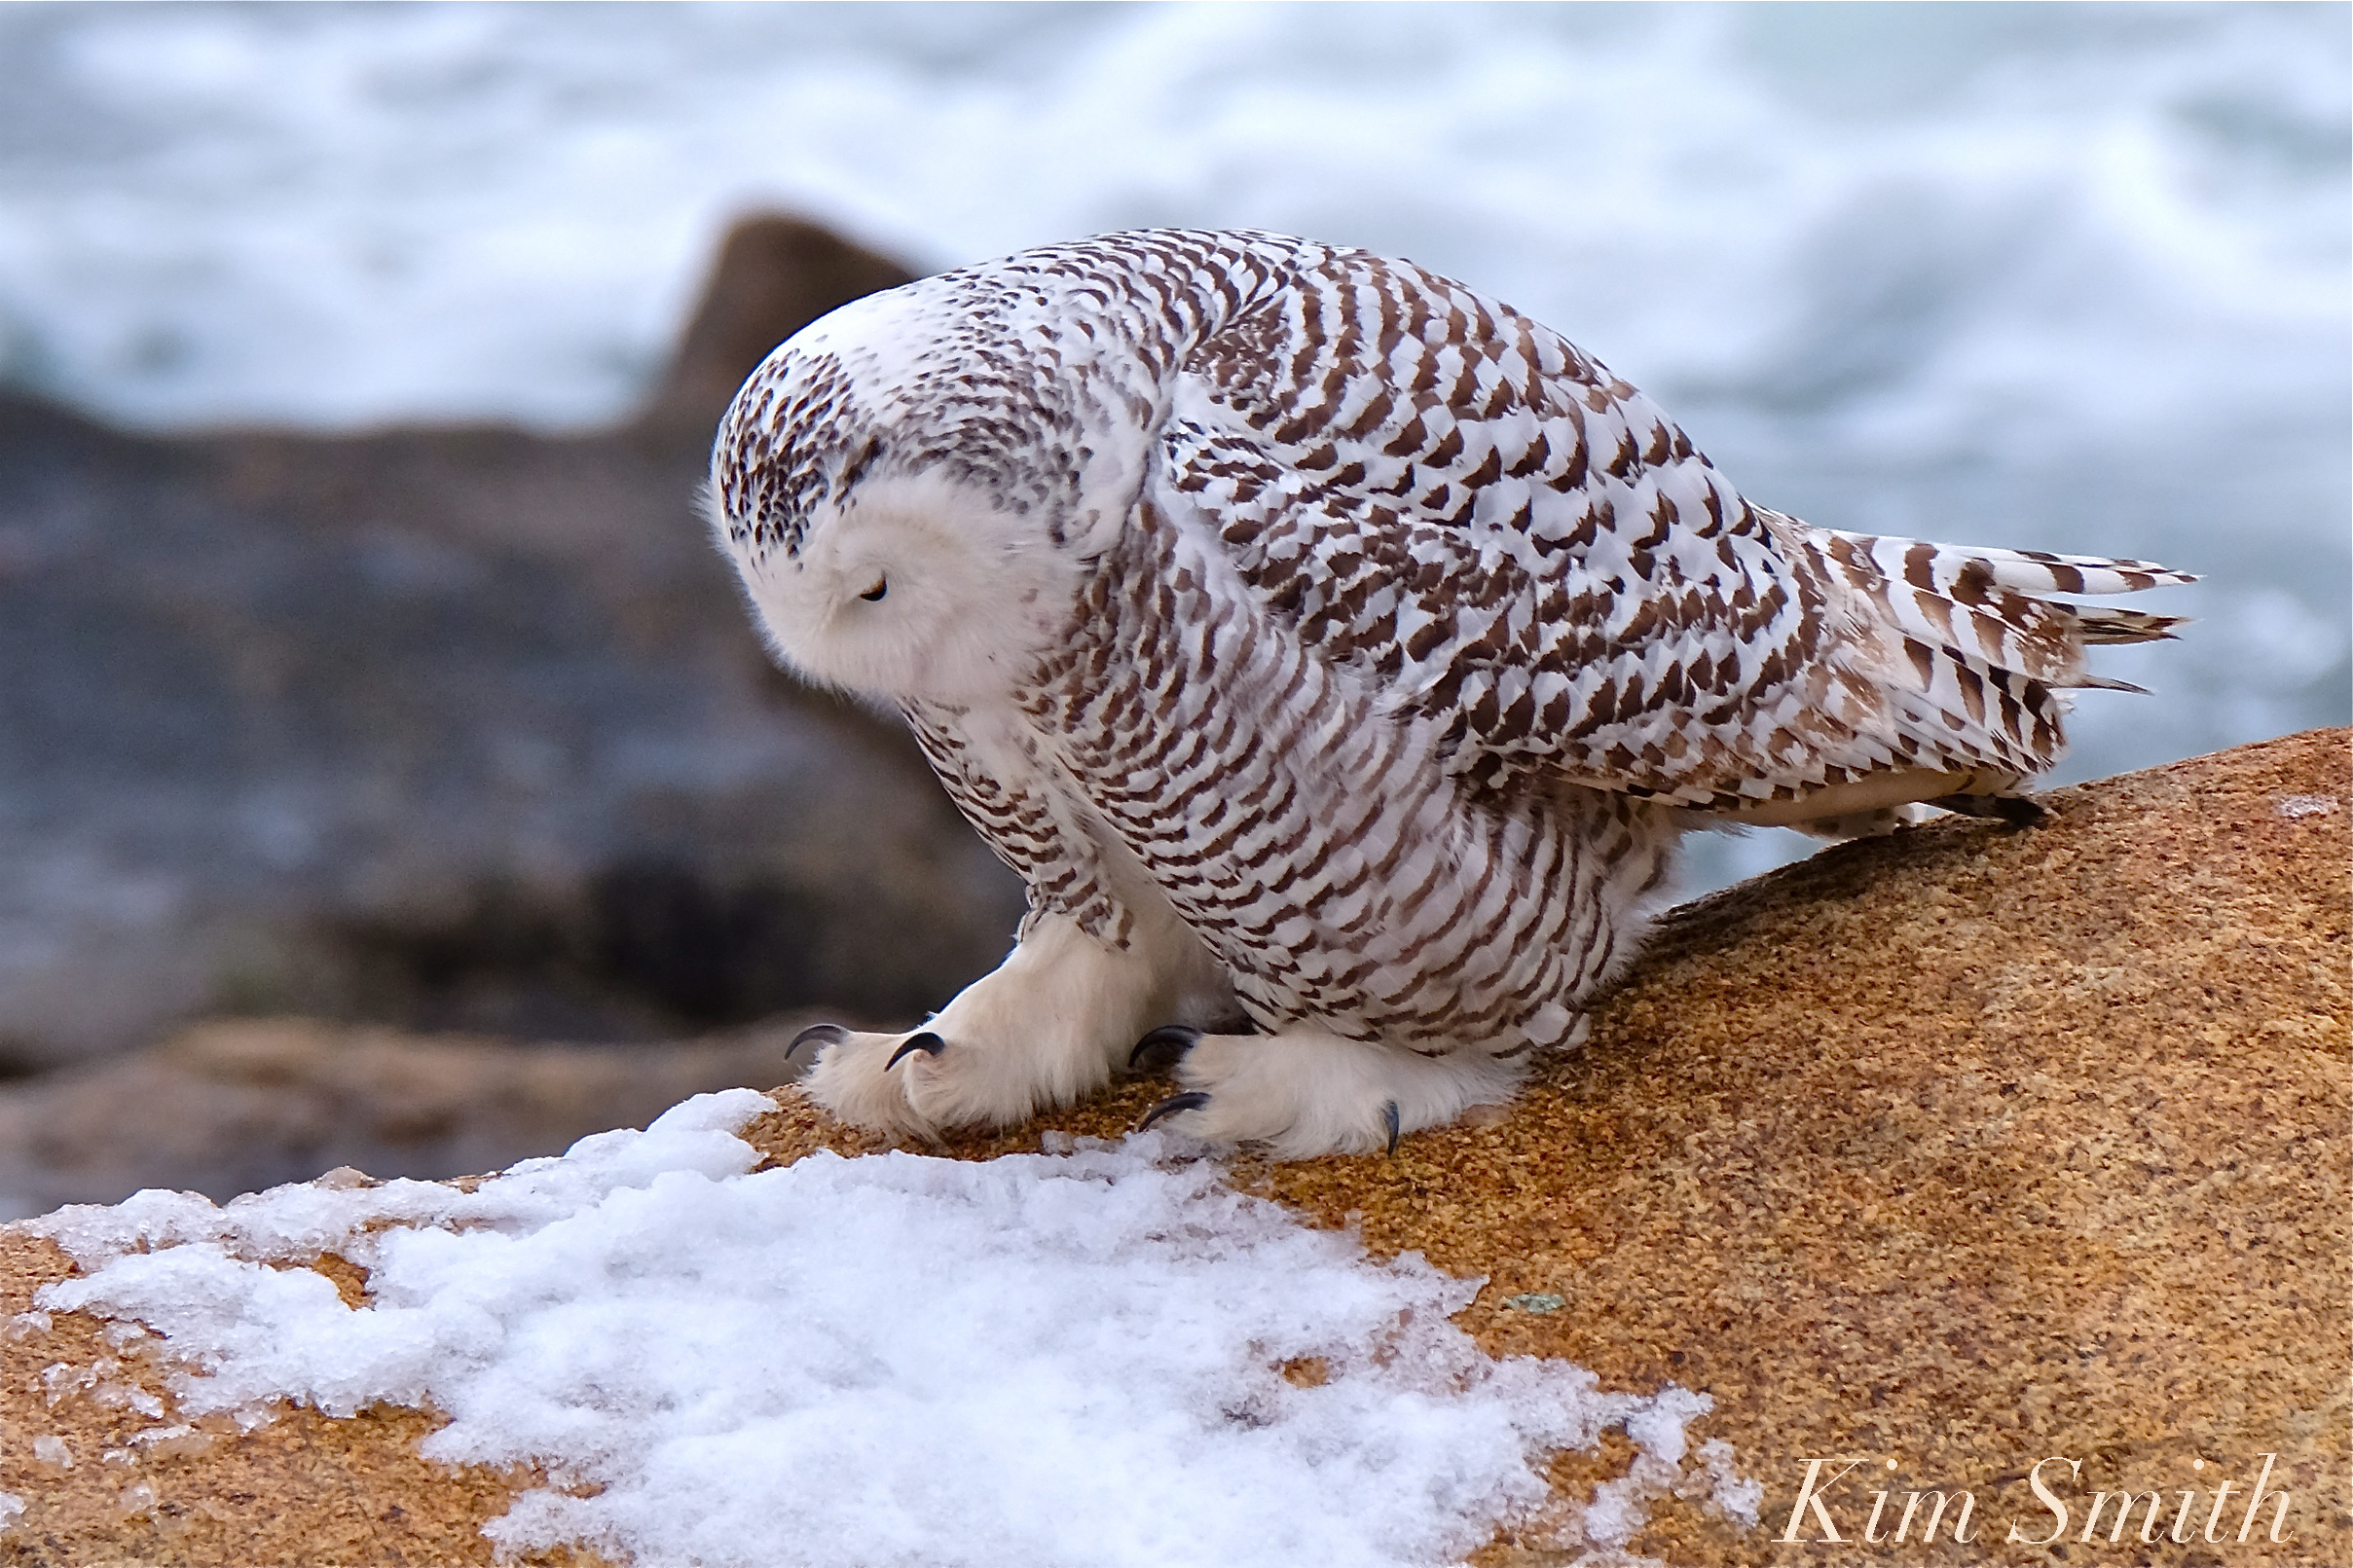 Female snowy owl kim smith designs a snowy owls feet are covered in feathers providing insulation against arctic temperaturesjust like a pair of warm fluffy slippers biocorpaavc Choice Image